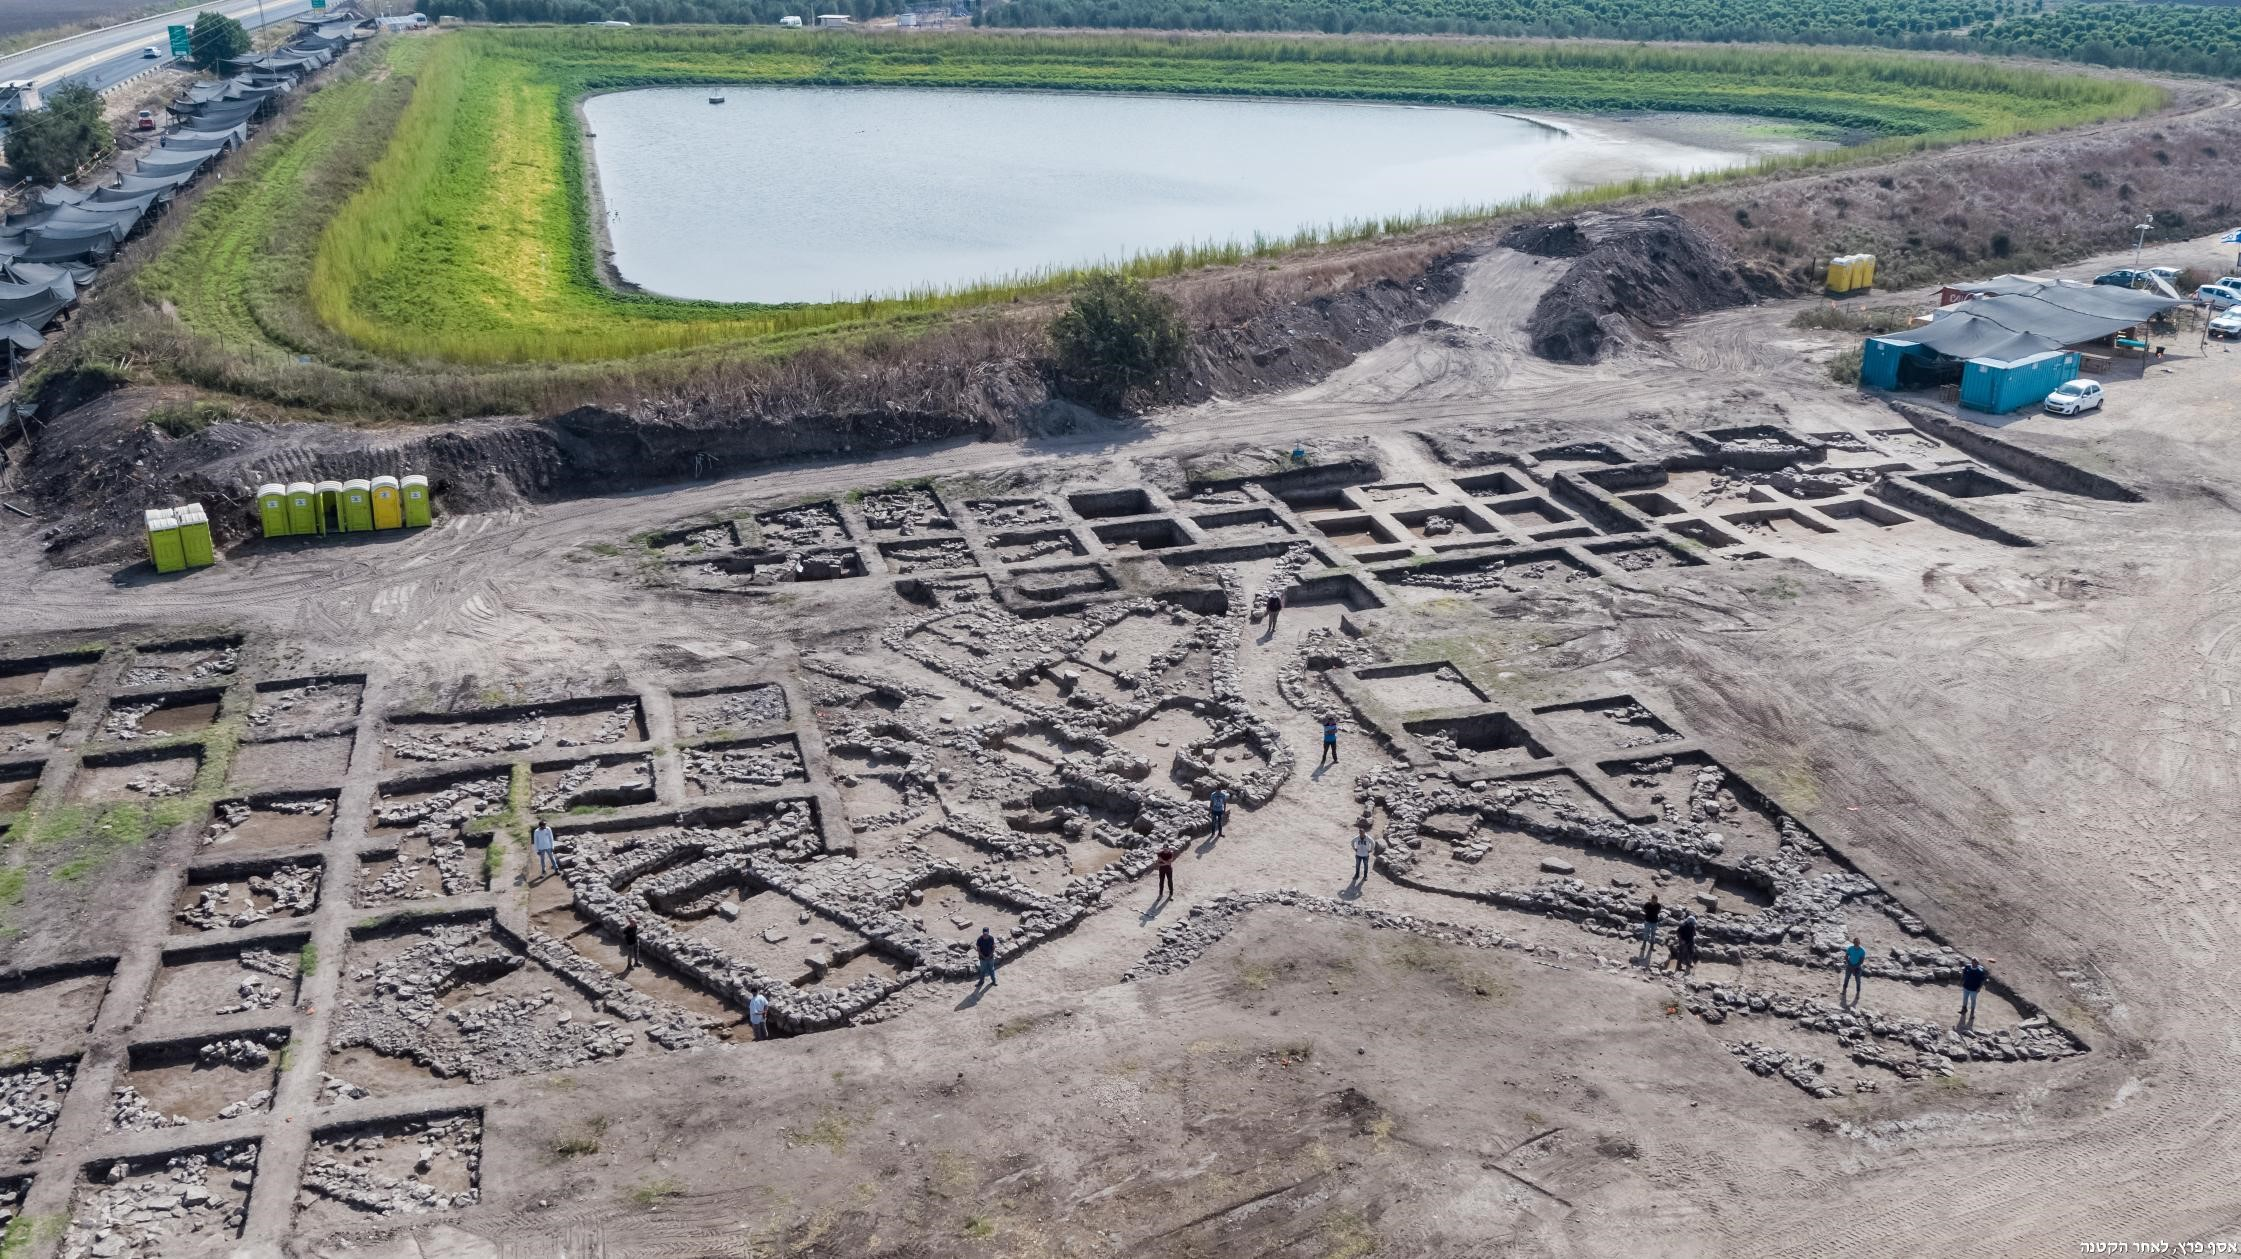 'Israel's ancient NYC': 5,000-year-old Canaanite megalopolis may rewrite history